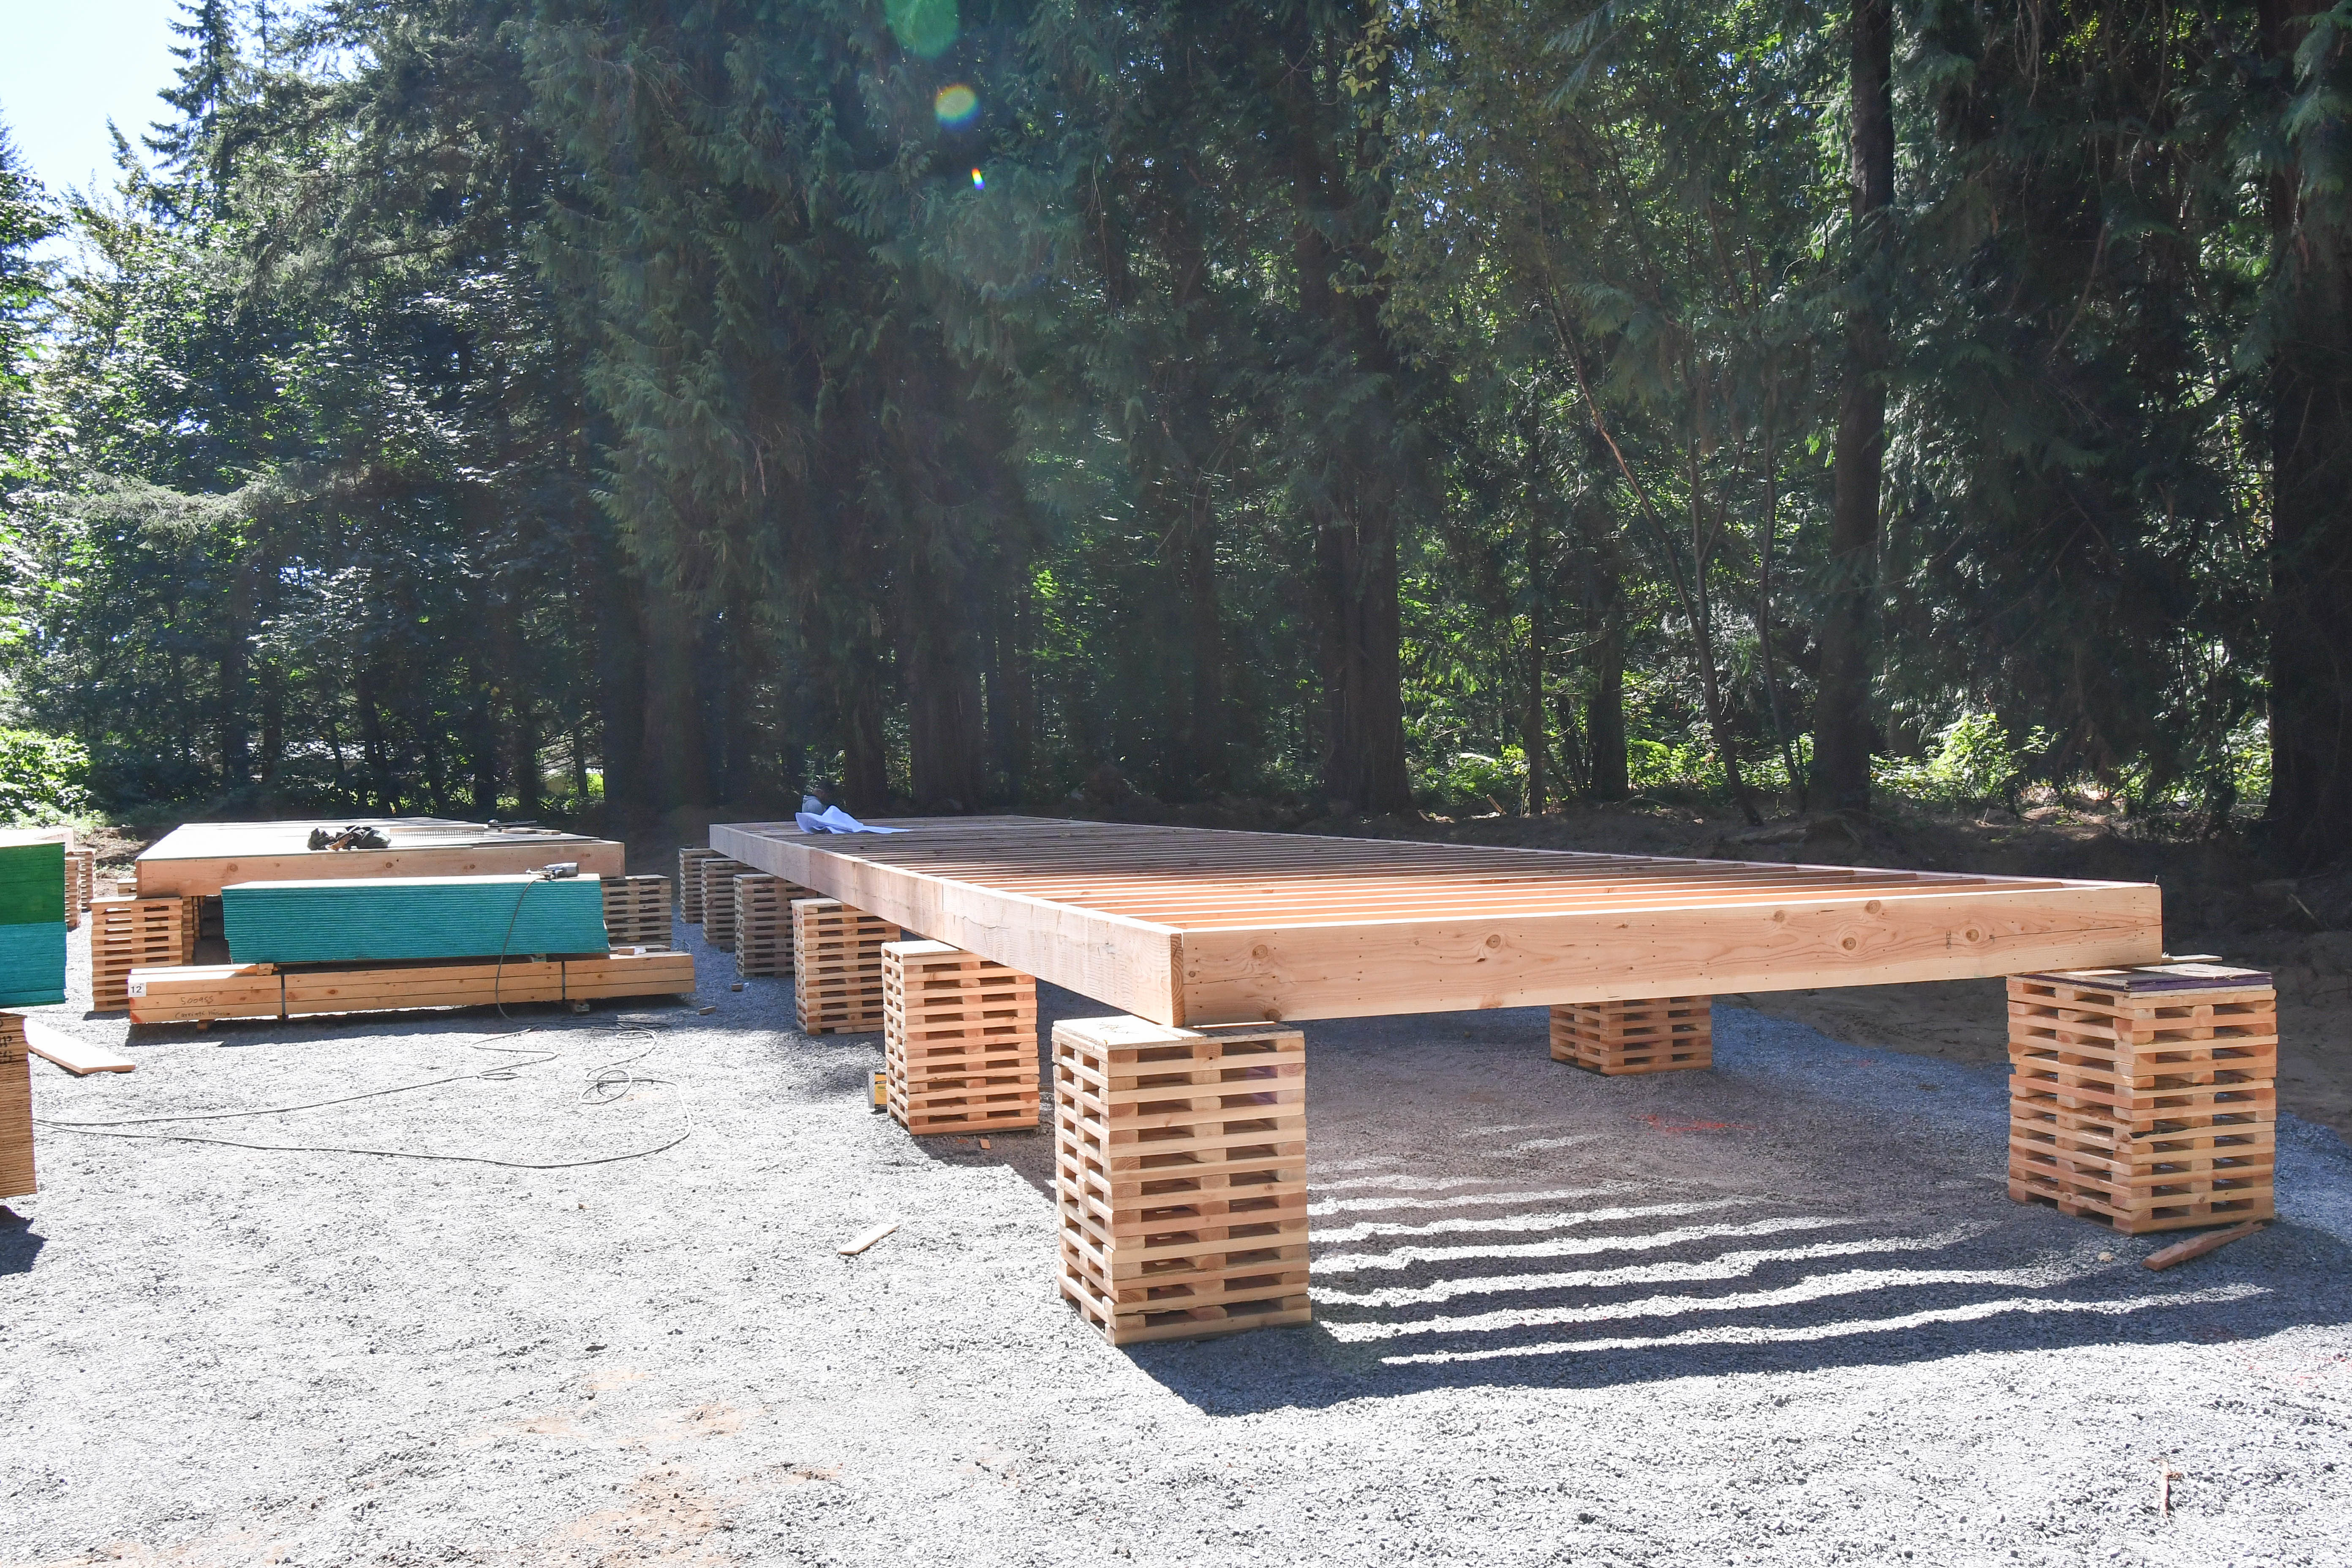 Floors for the community building.